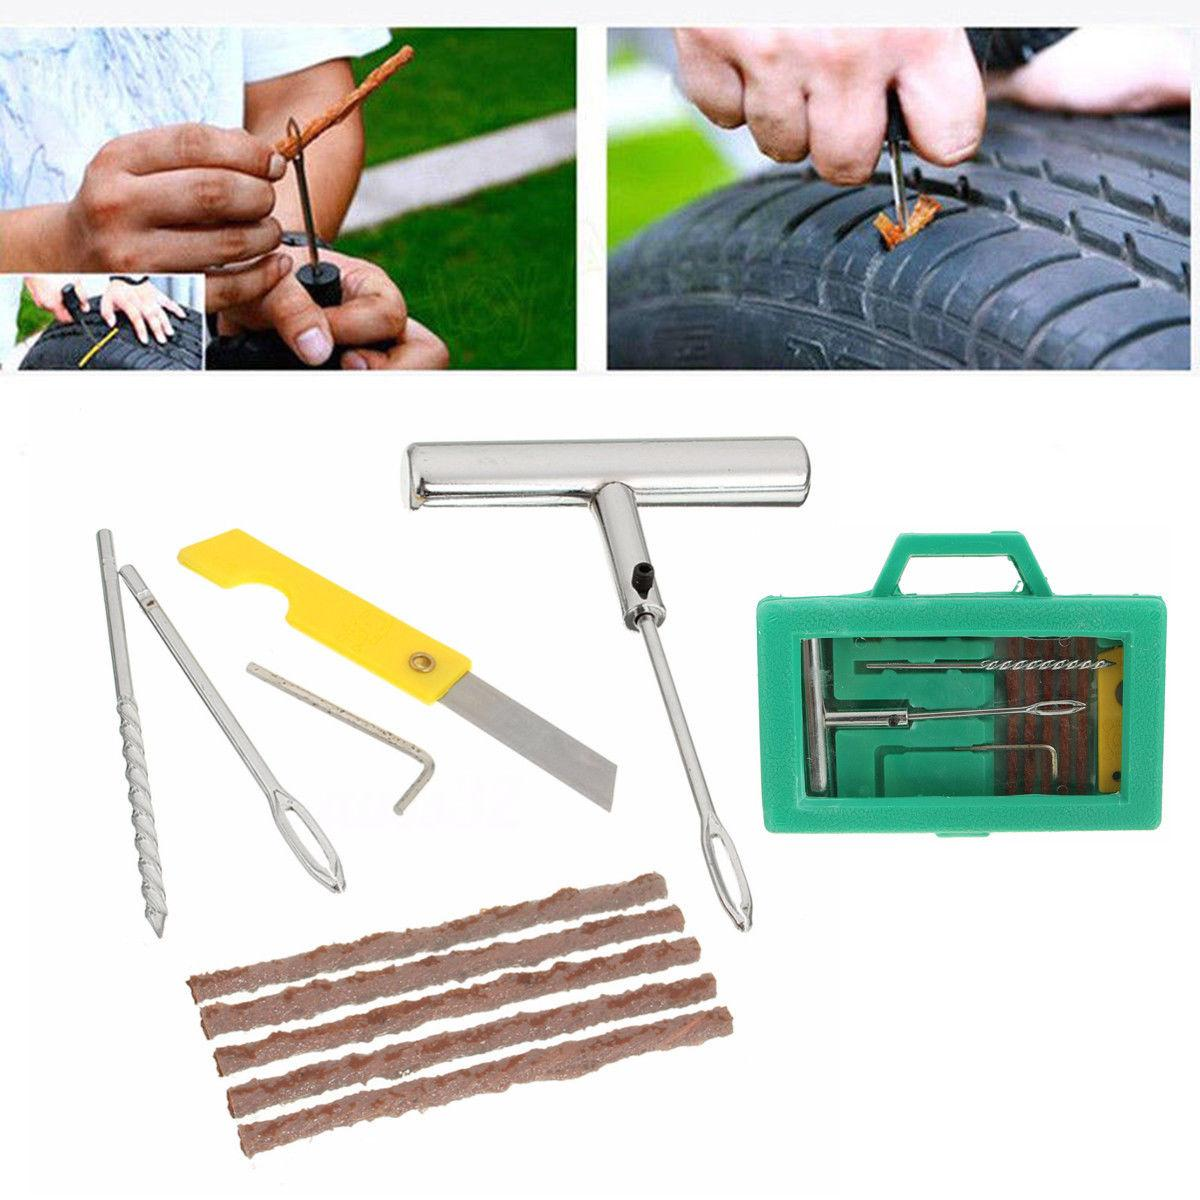 Tire Repair Kit >> Tire Repair Kit Flat Tire Tyre Repair Car Truck Bike Motorcycle Home Plug Patch Top Selling